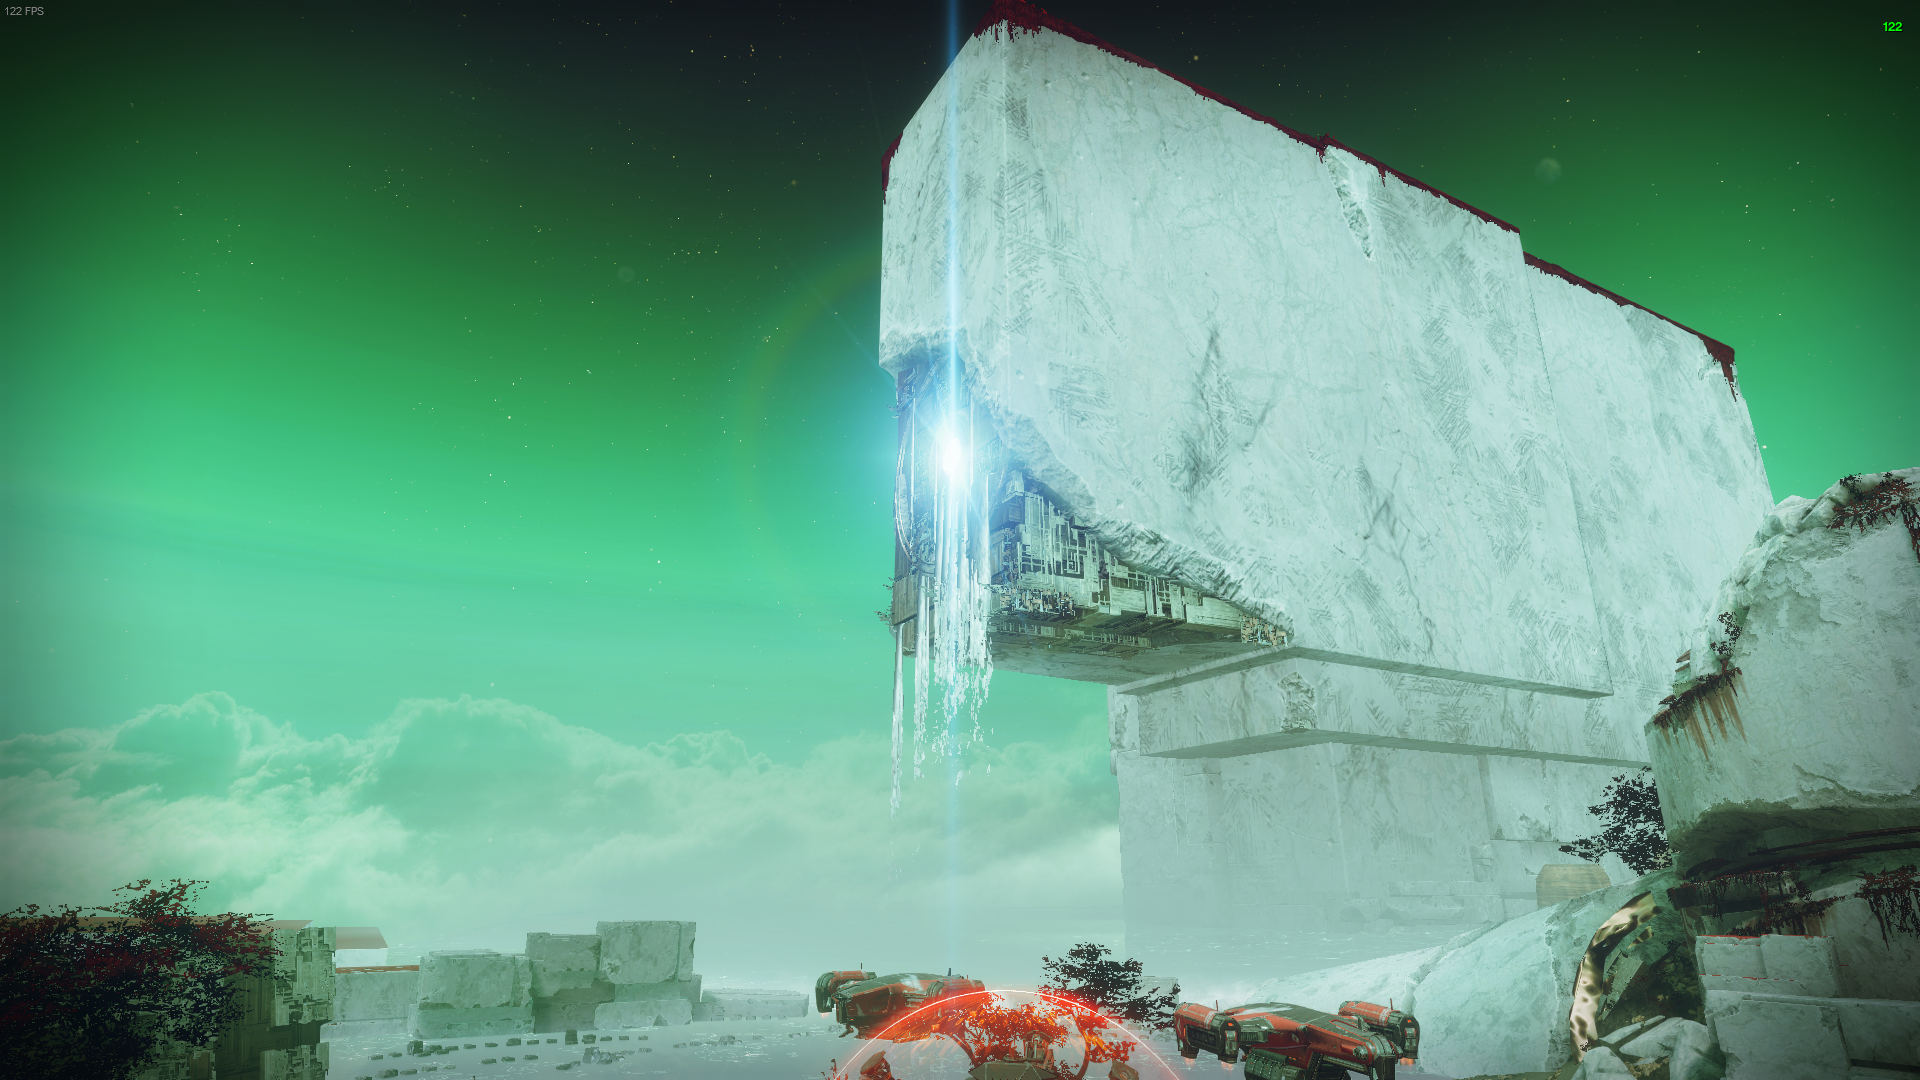 A square Vex monolith with and overhang which has exposed machinery rather than white rock. A light shines from within and fluid falls out. Red moss circles the top.